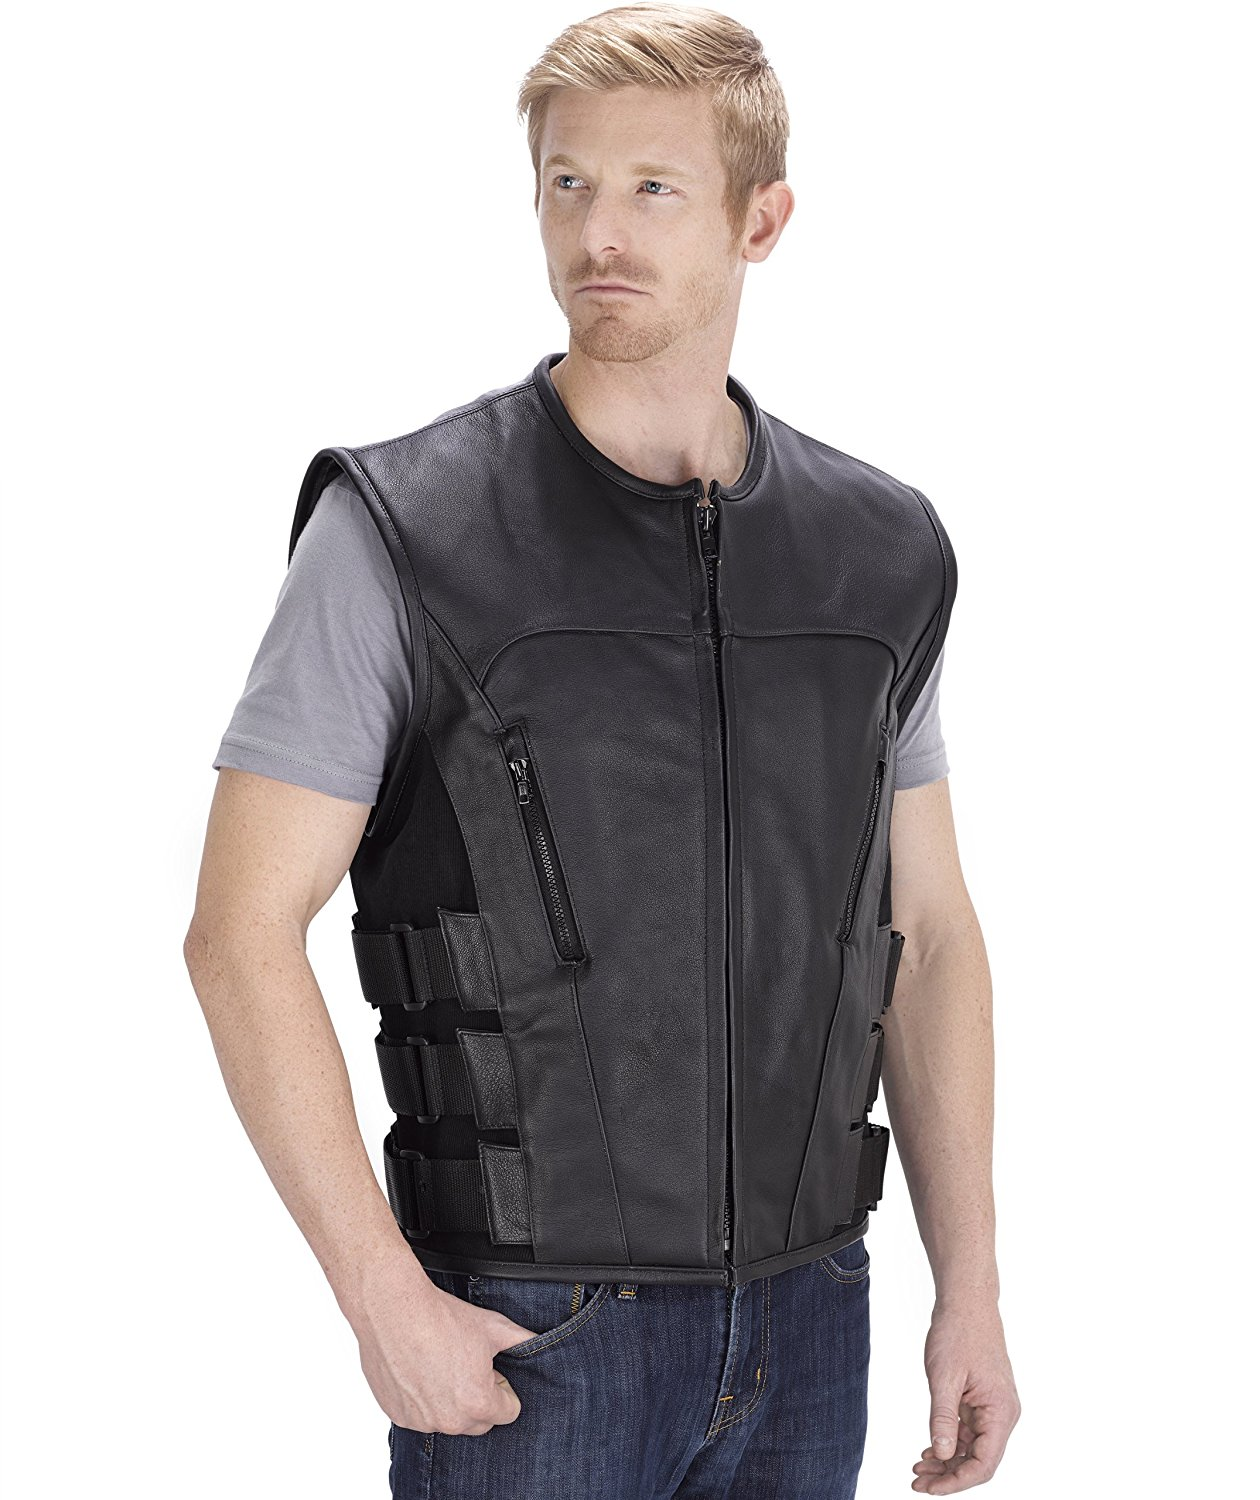 Viking Cycle Odin Motorcycle Leather Vest for Men (XL)